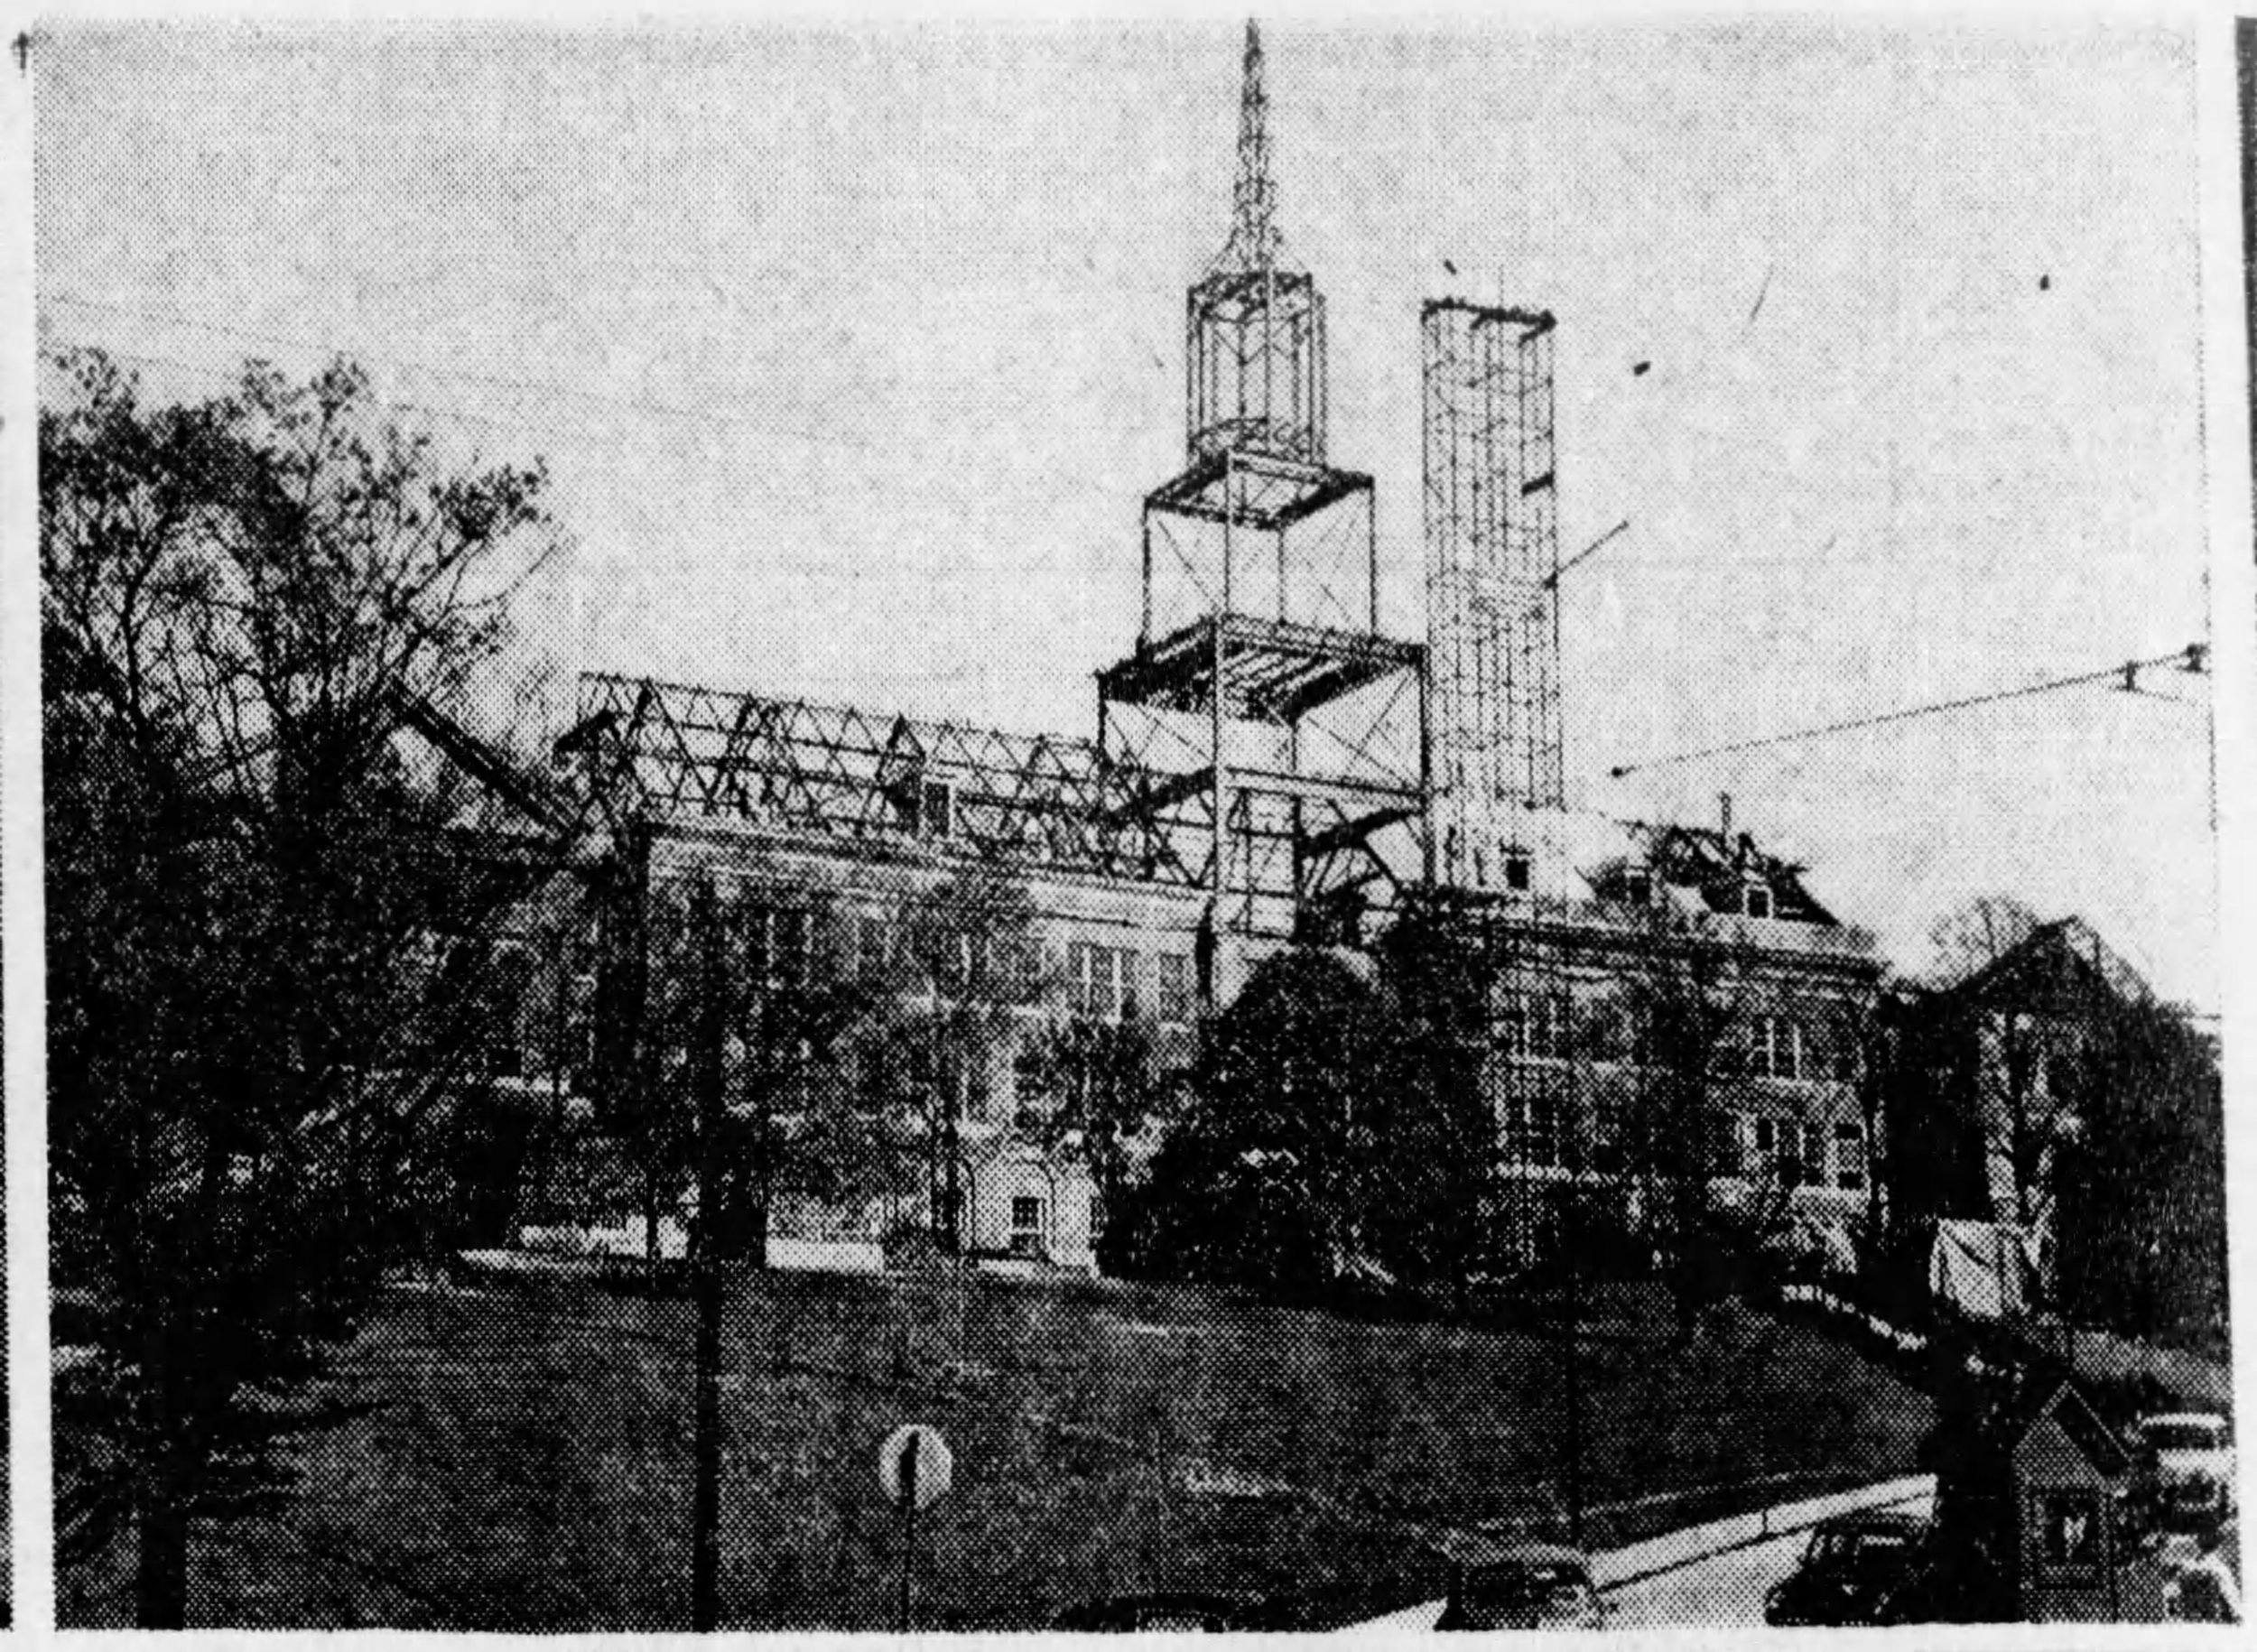 McMicken Hall under construction, May 1949 [via the Cincinnati Enquirer]